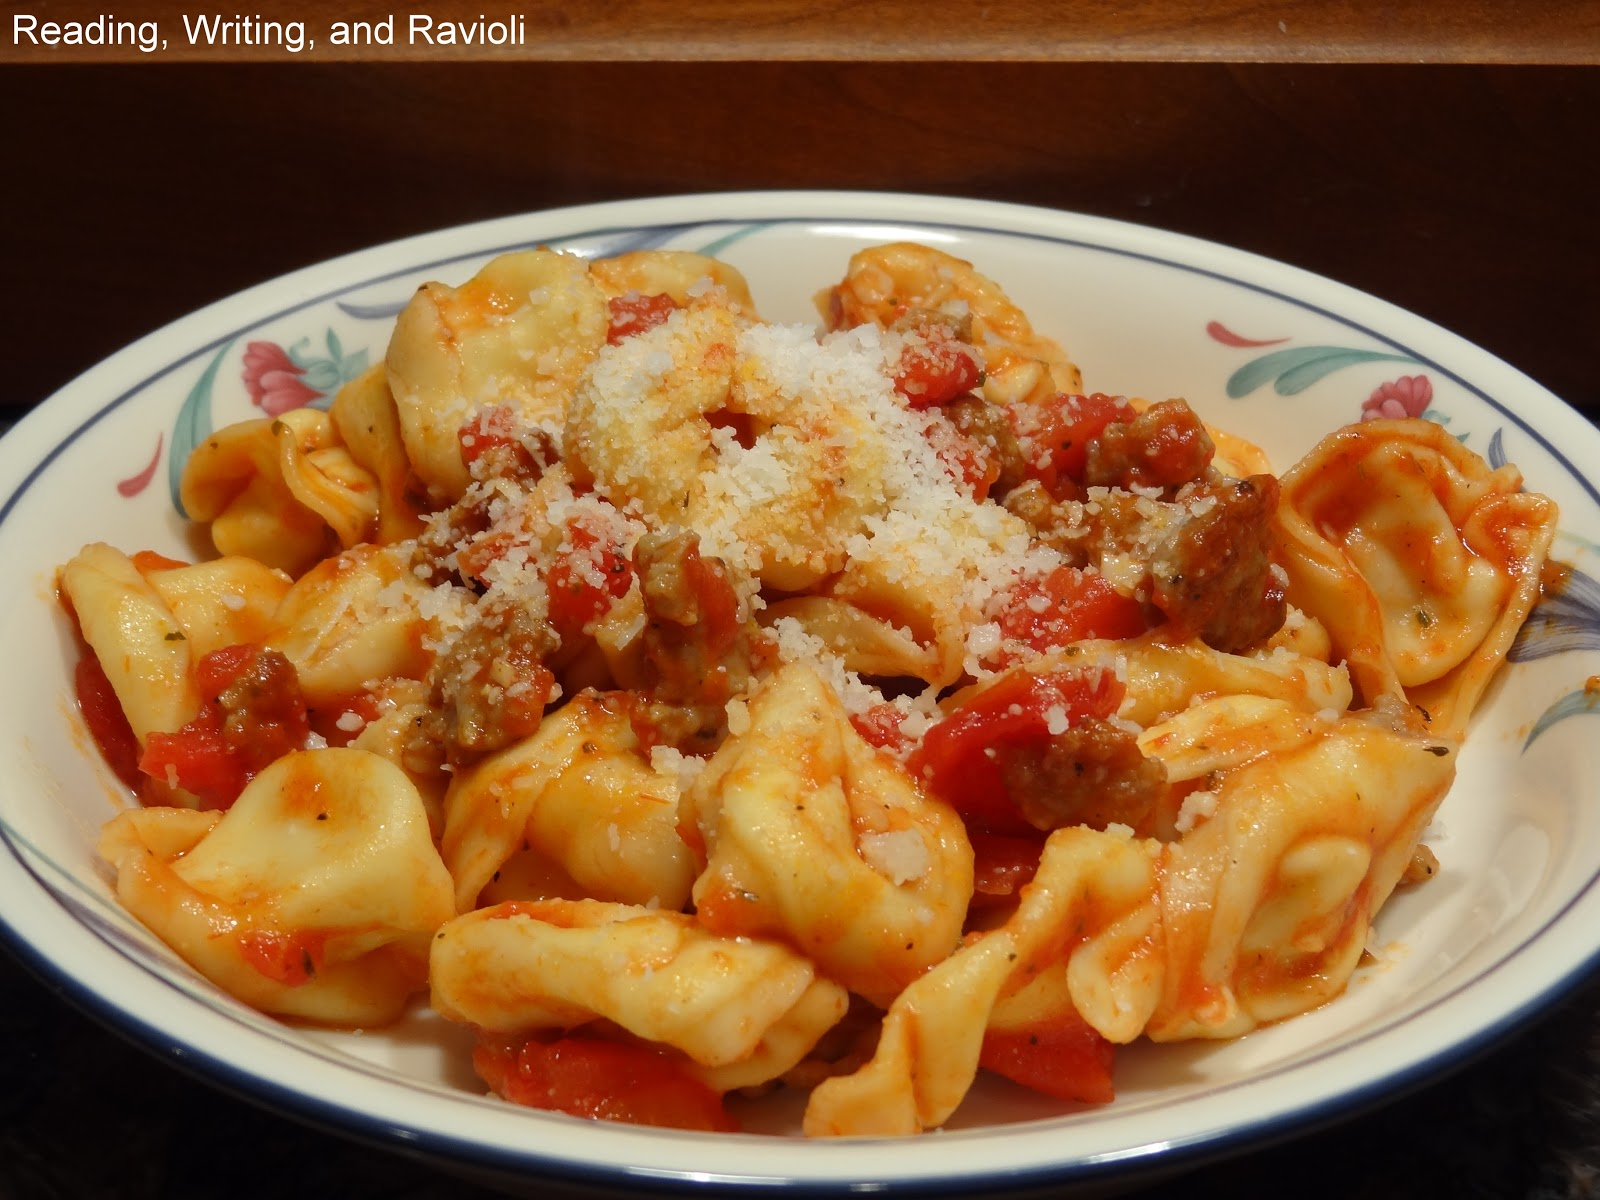 Reading writing and ravioli recipe three cheese tortellini and reading writing and ravioli recipe three cheese tortellini and sweet italian sausage in a simple tomato sauce forumfinder Images